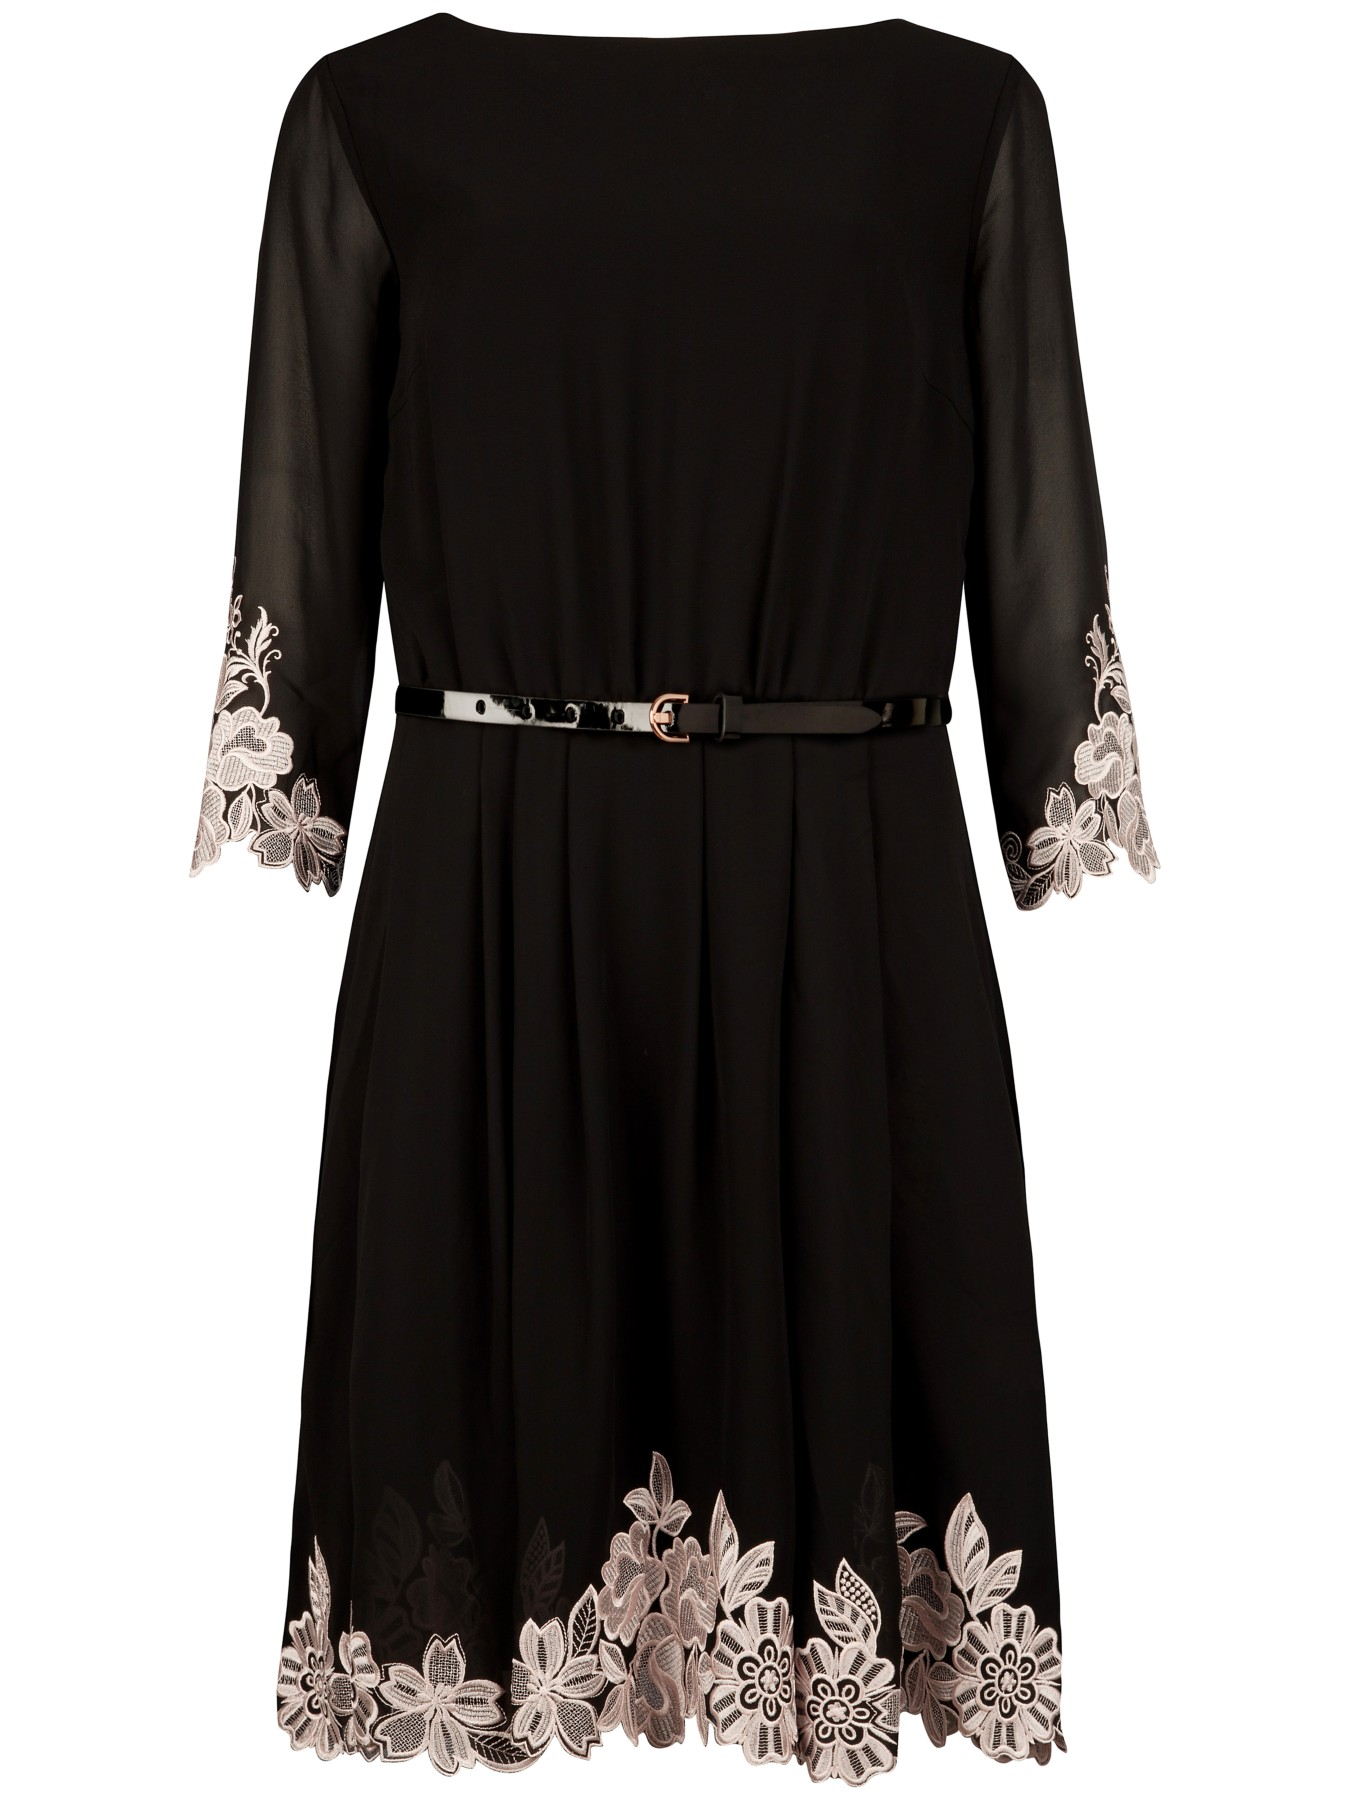 Ted baker heavy lace embroidered dress in black lyst